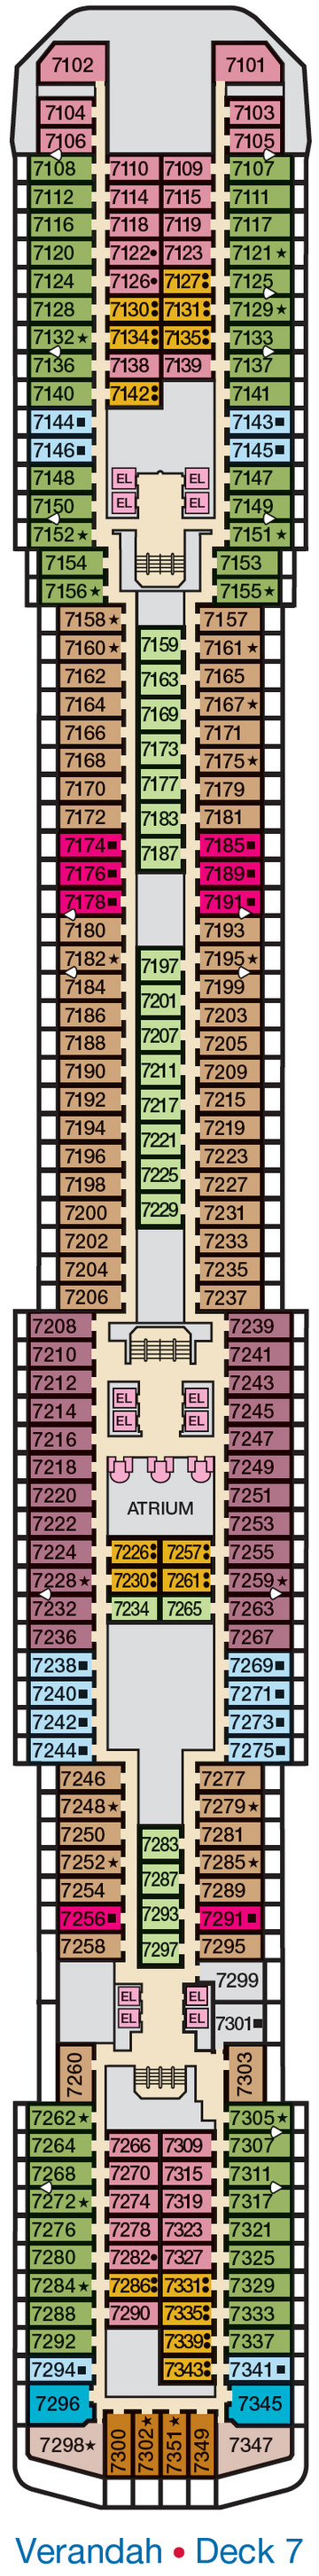 Carnival Legend Verandah Deck 7 layout